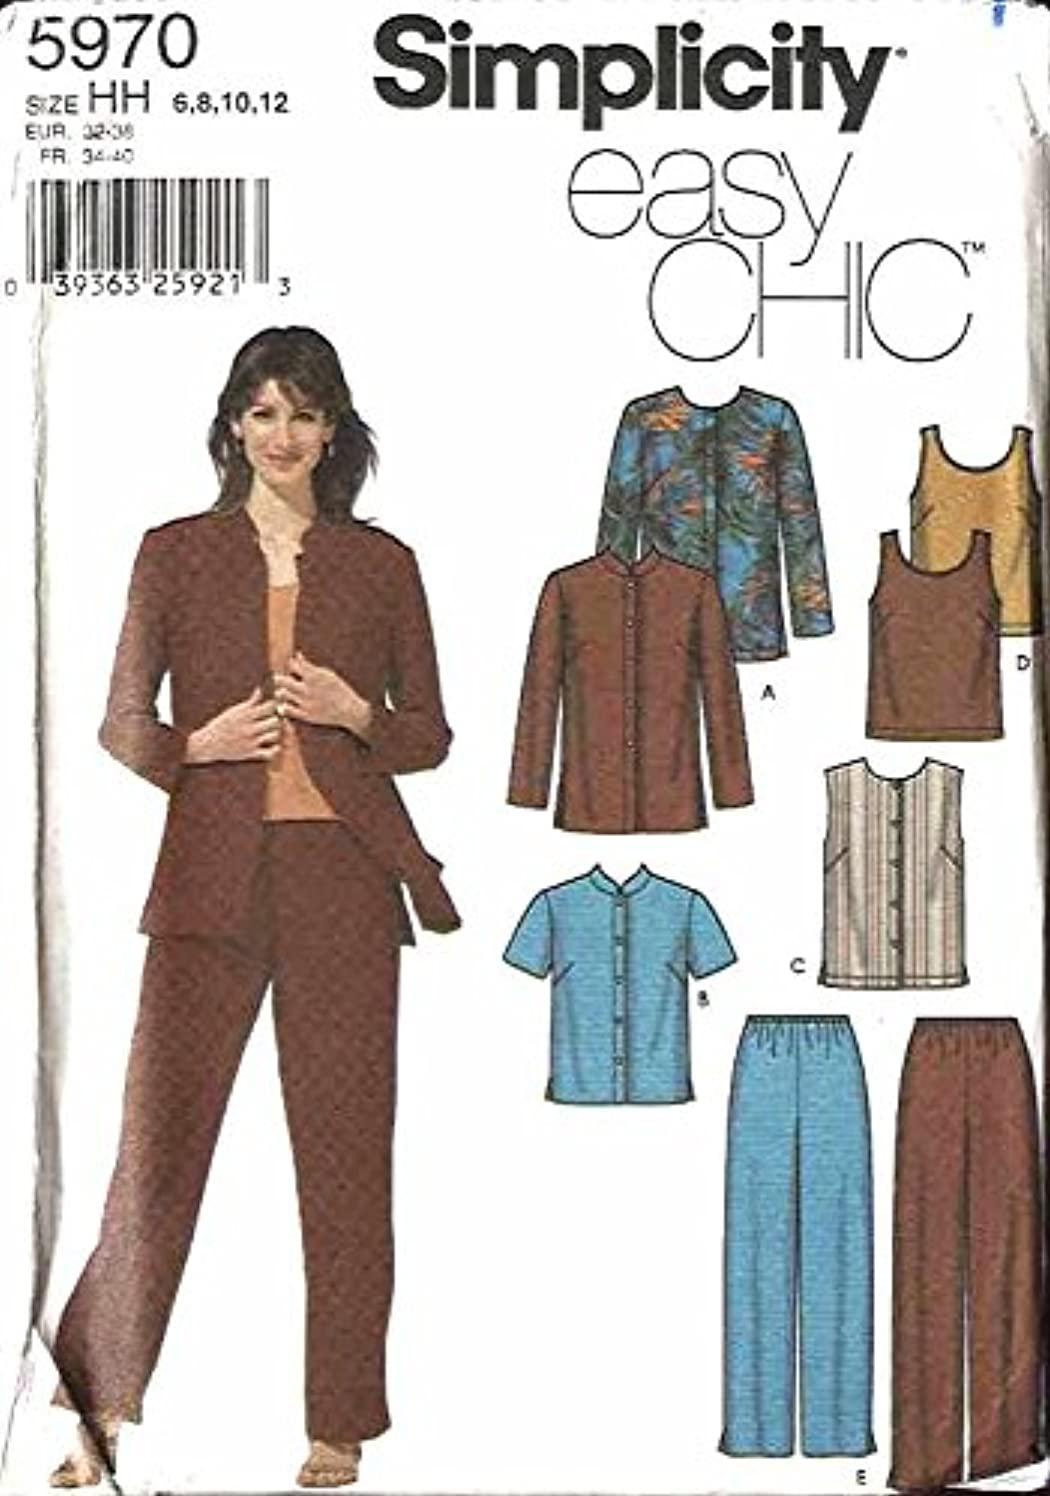 Simplicity 5970 Sewing Pattern Misses Jacket Vest Top Pants Size 6 - 8 - 10 - 12 - Bust 30 1/2 - 31 1/2- 32 1/2 - 34